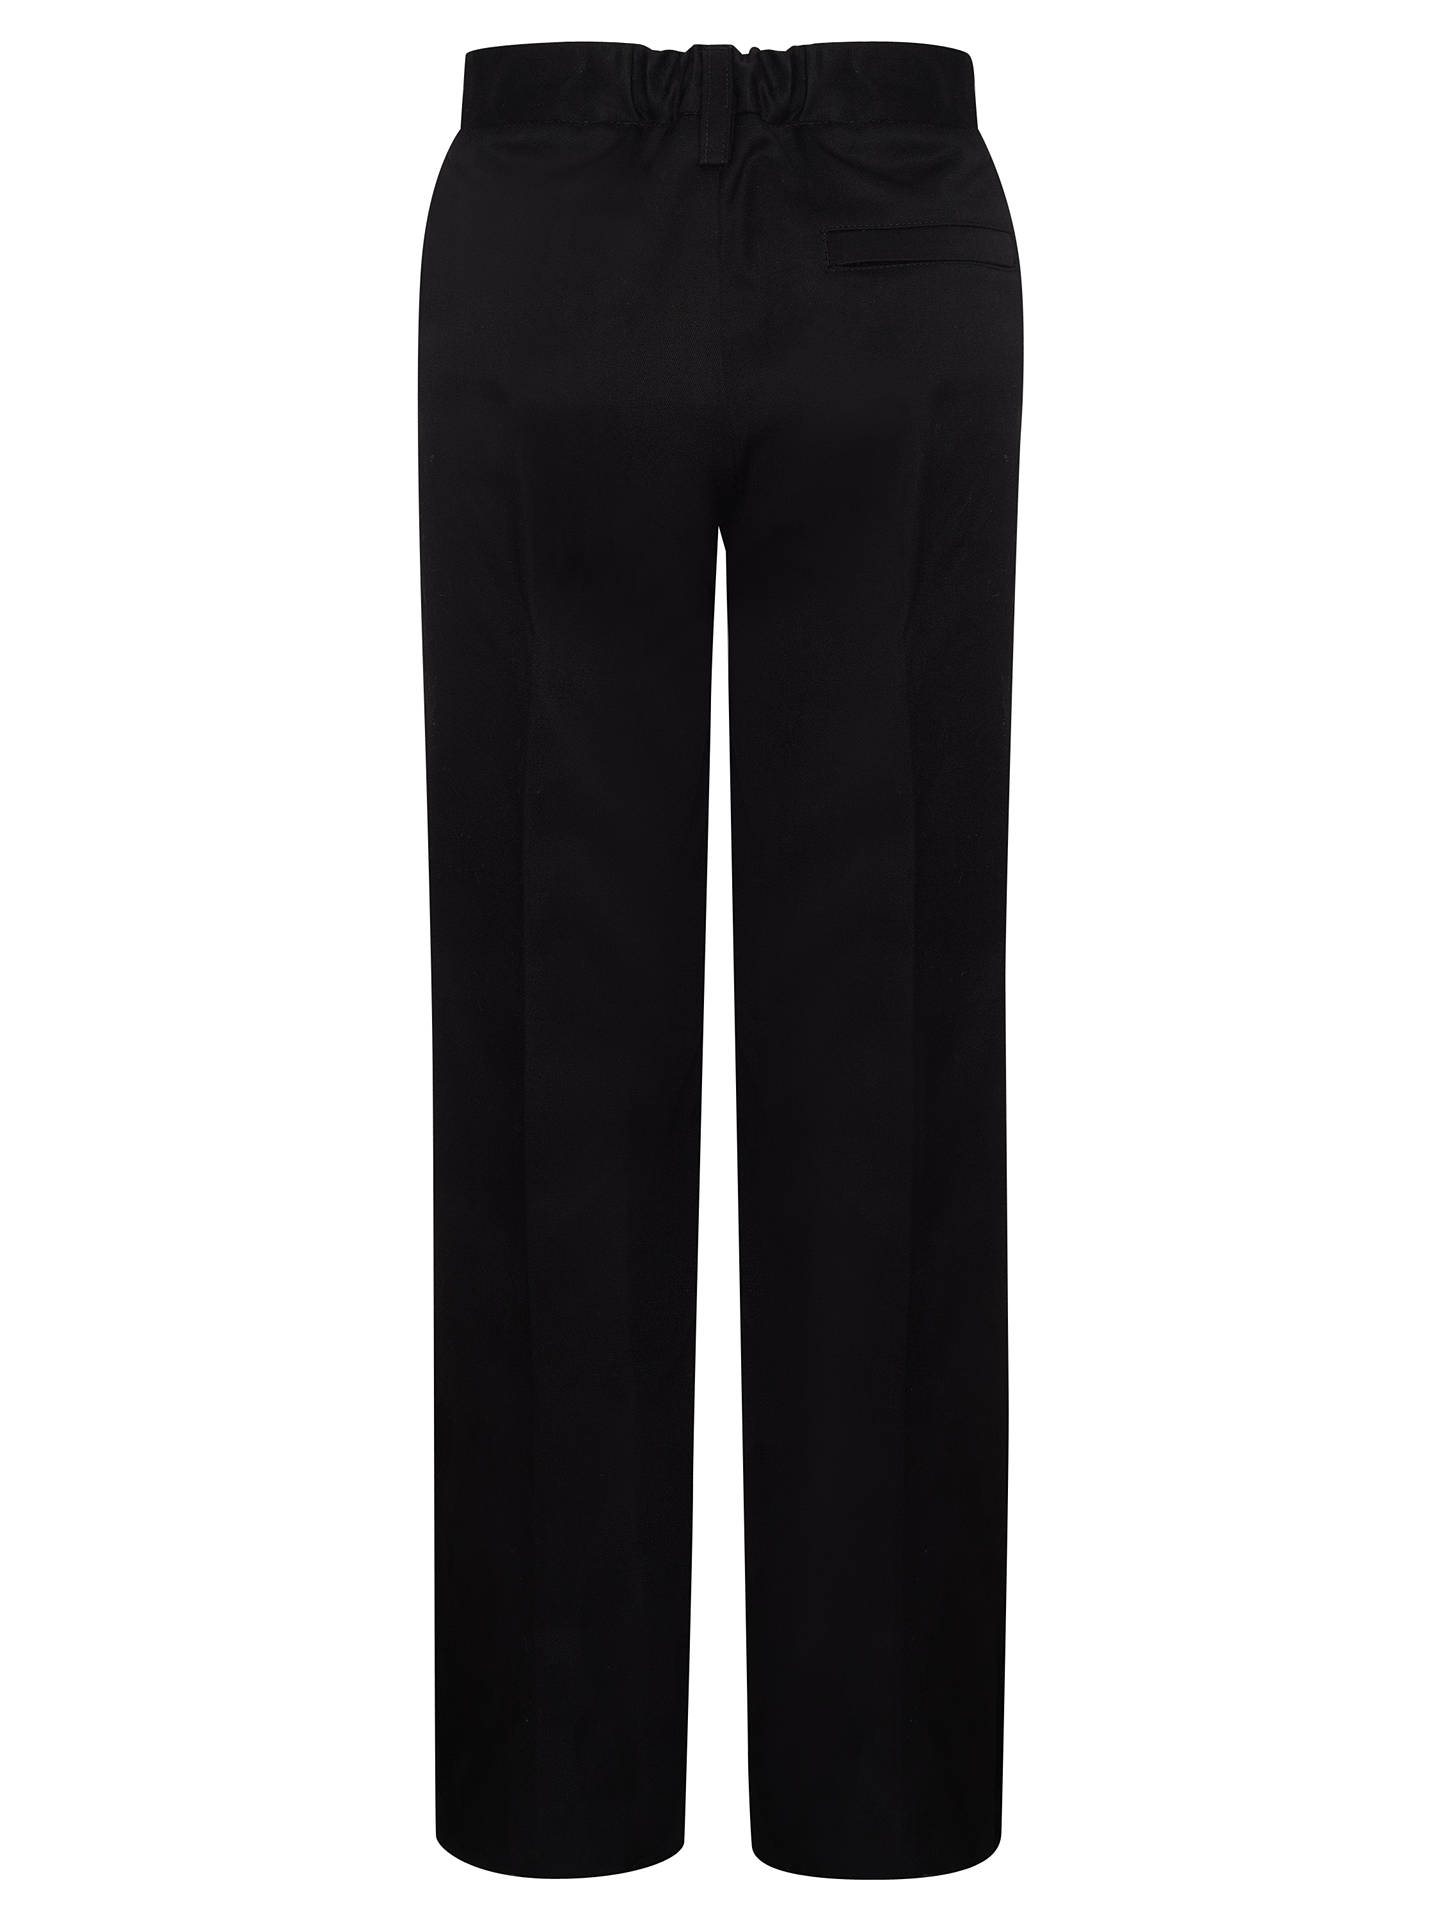 Buy John Lewis & Partners Boys' Pure Cotton Adjustable Waist Straight Leg School Trousers, Black, 3 years Online at johnlewis.com